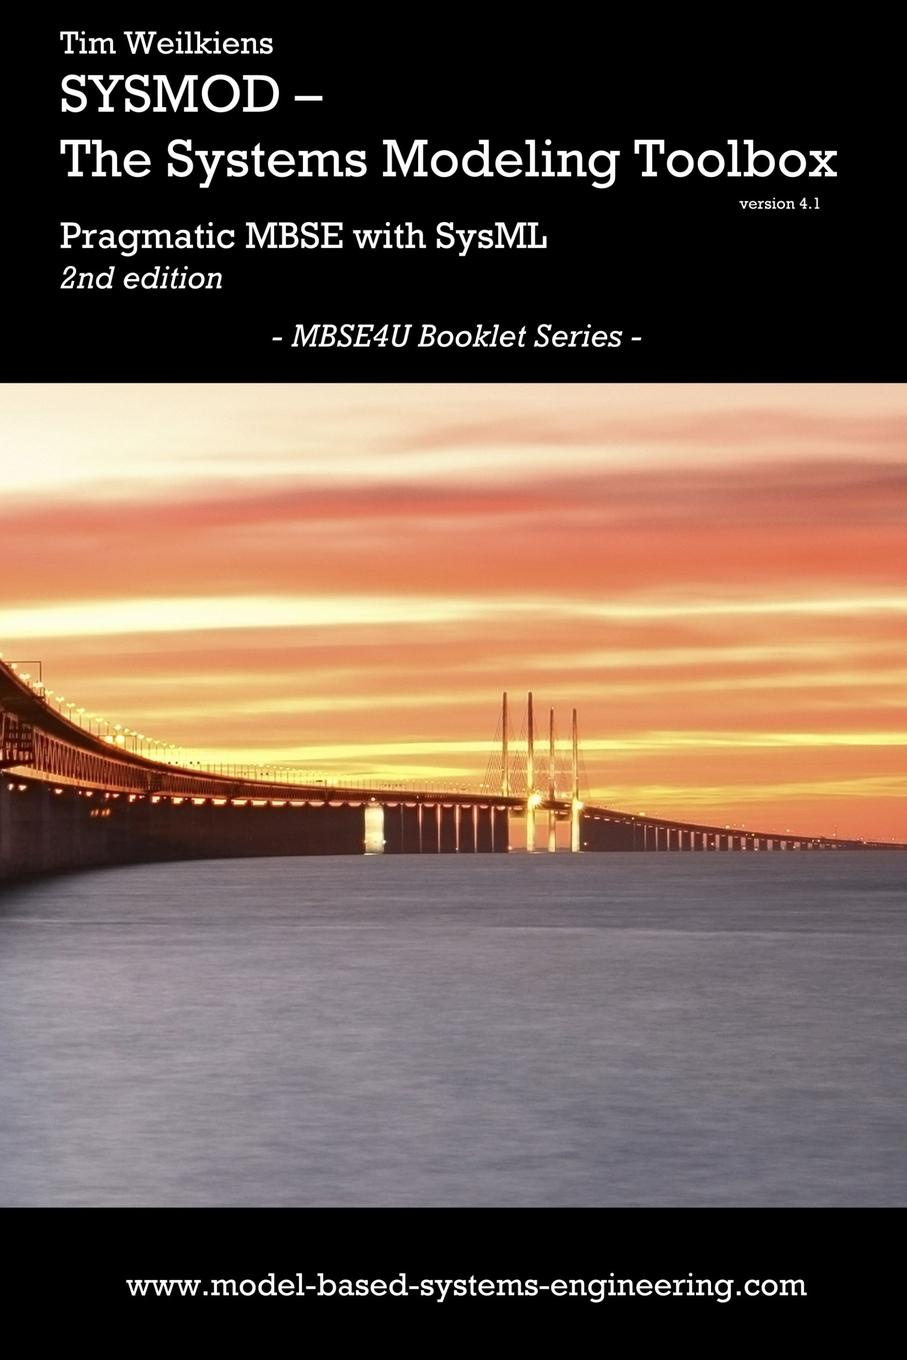 Tim Weilkiens SYSMOD - The Systems Modeling Toolbox - Pragmatic MBSE with SysML pragmatic power